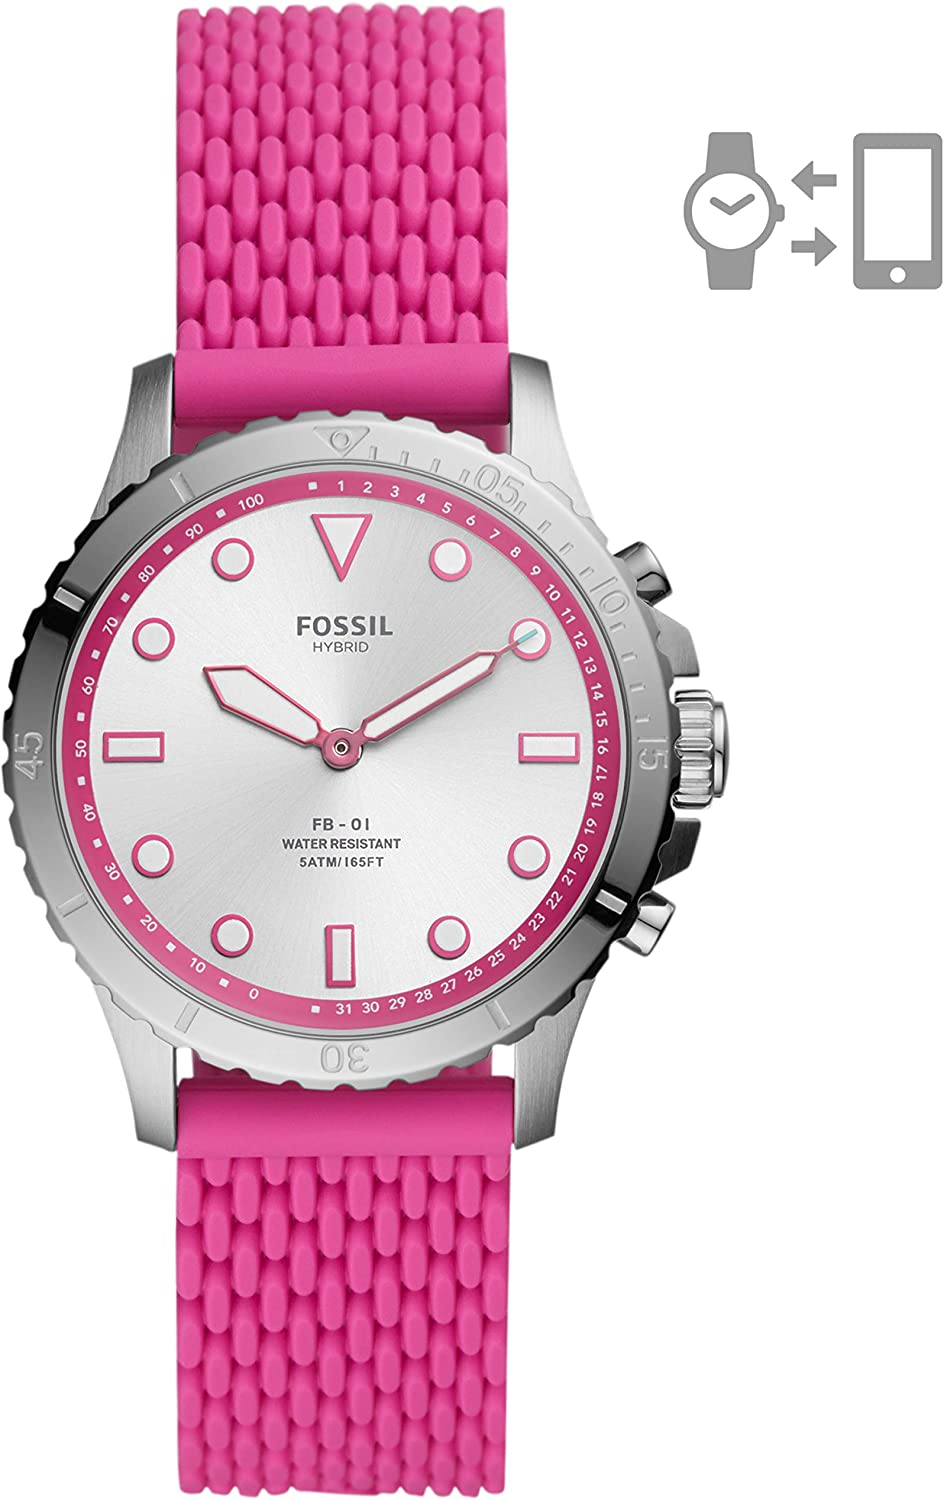 Fossil Women's FB-01 Stainless Steel Hybrid Smartwatch with Activity Tracking and Smartphone Notifications Silver/Pink Silicone